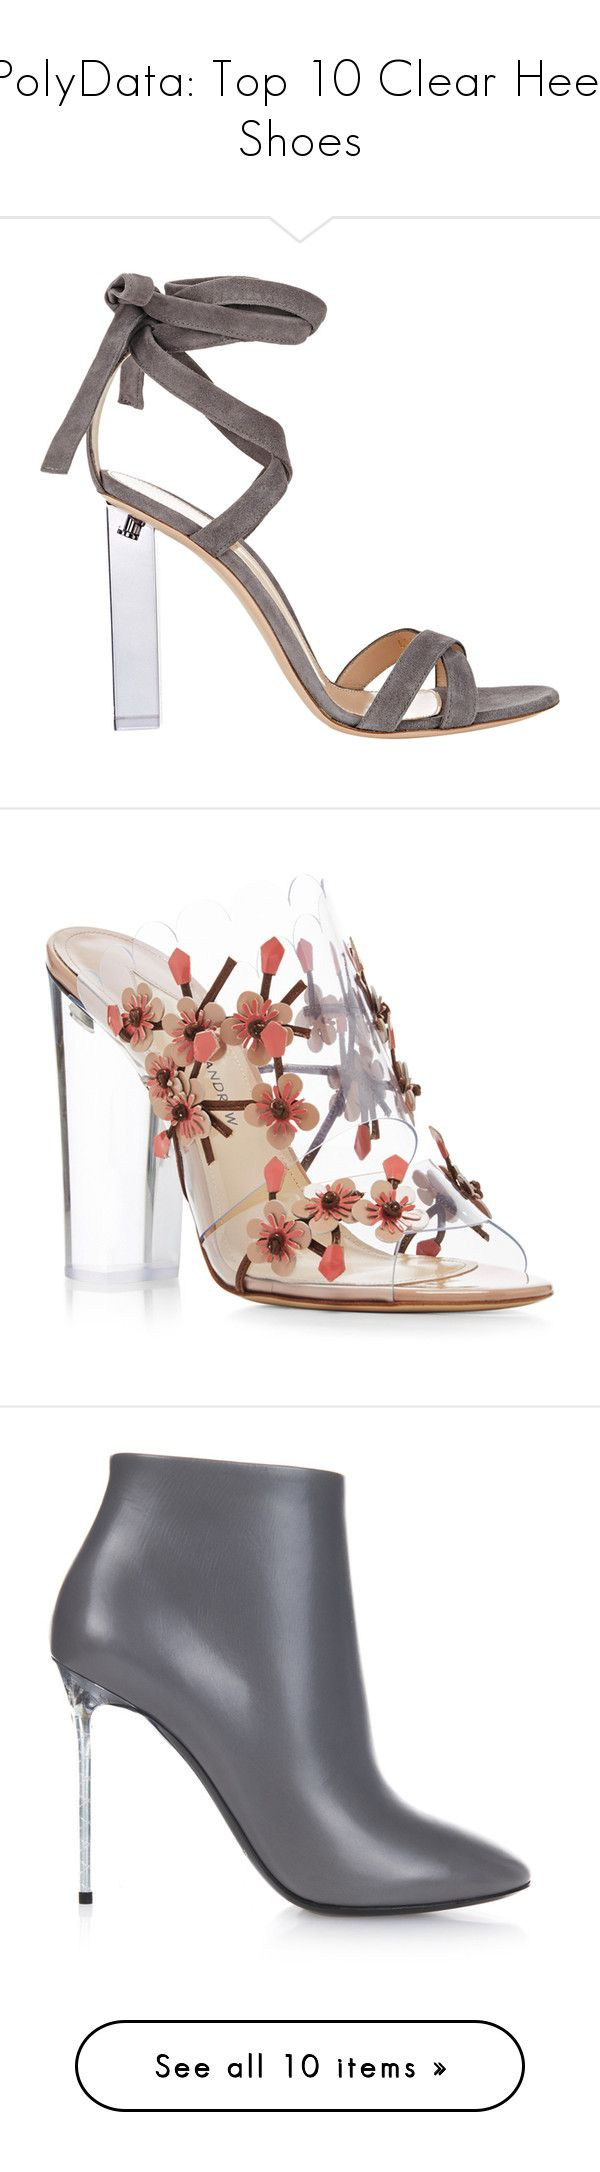 """PolyData: Top 10 Clear Heel Shoes"" by polyvore ❤ liked on Polyvore featuring clearheels, polydata, shoes, sandals, heels, chaussures, high heels, colorless, ankle strap heel sandals and clear shoes"